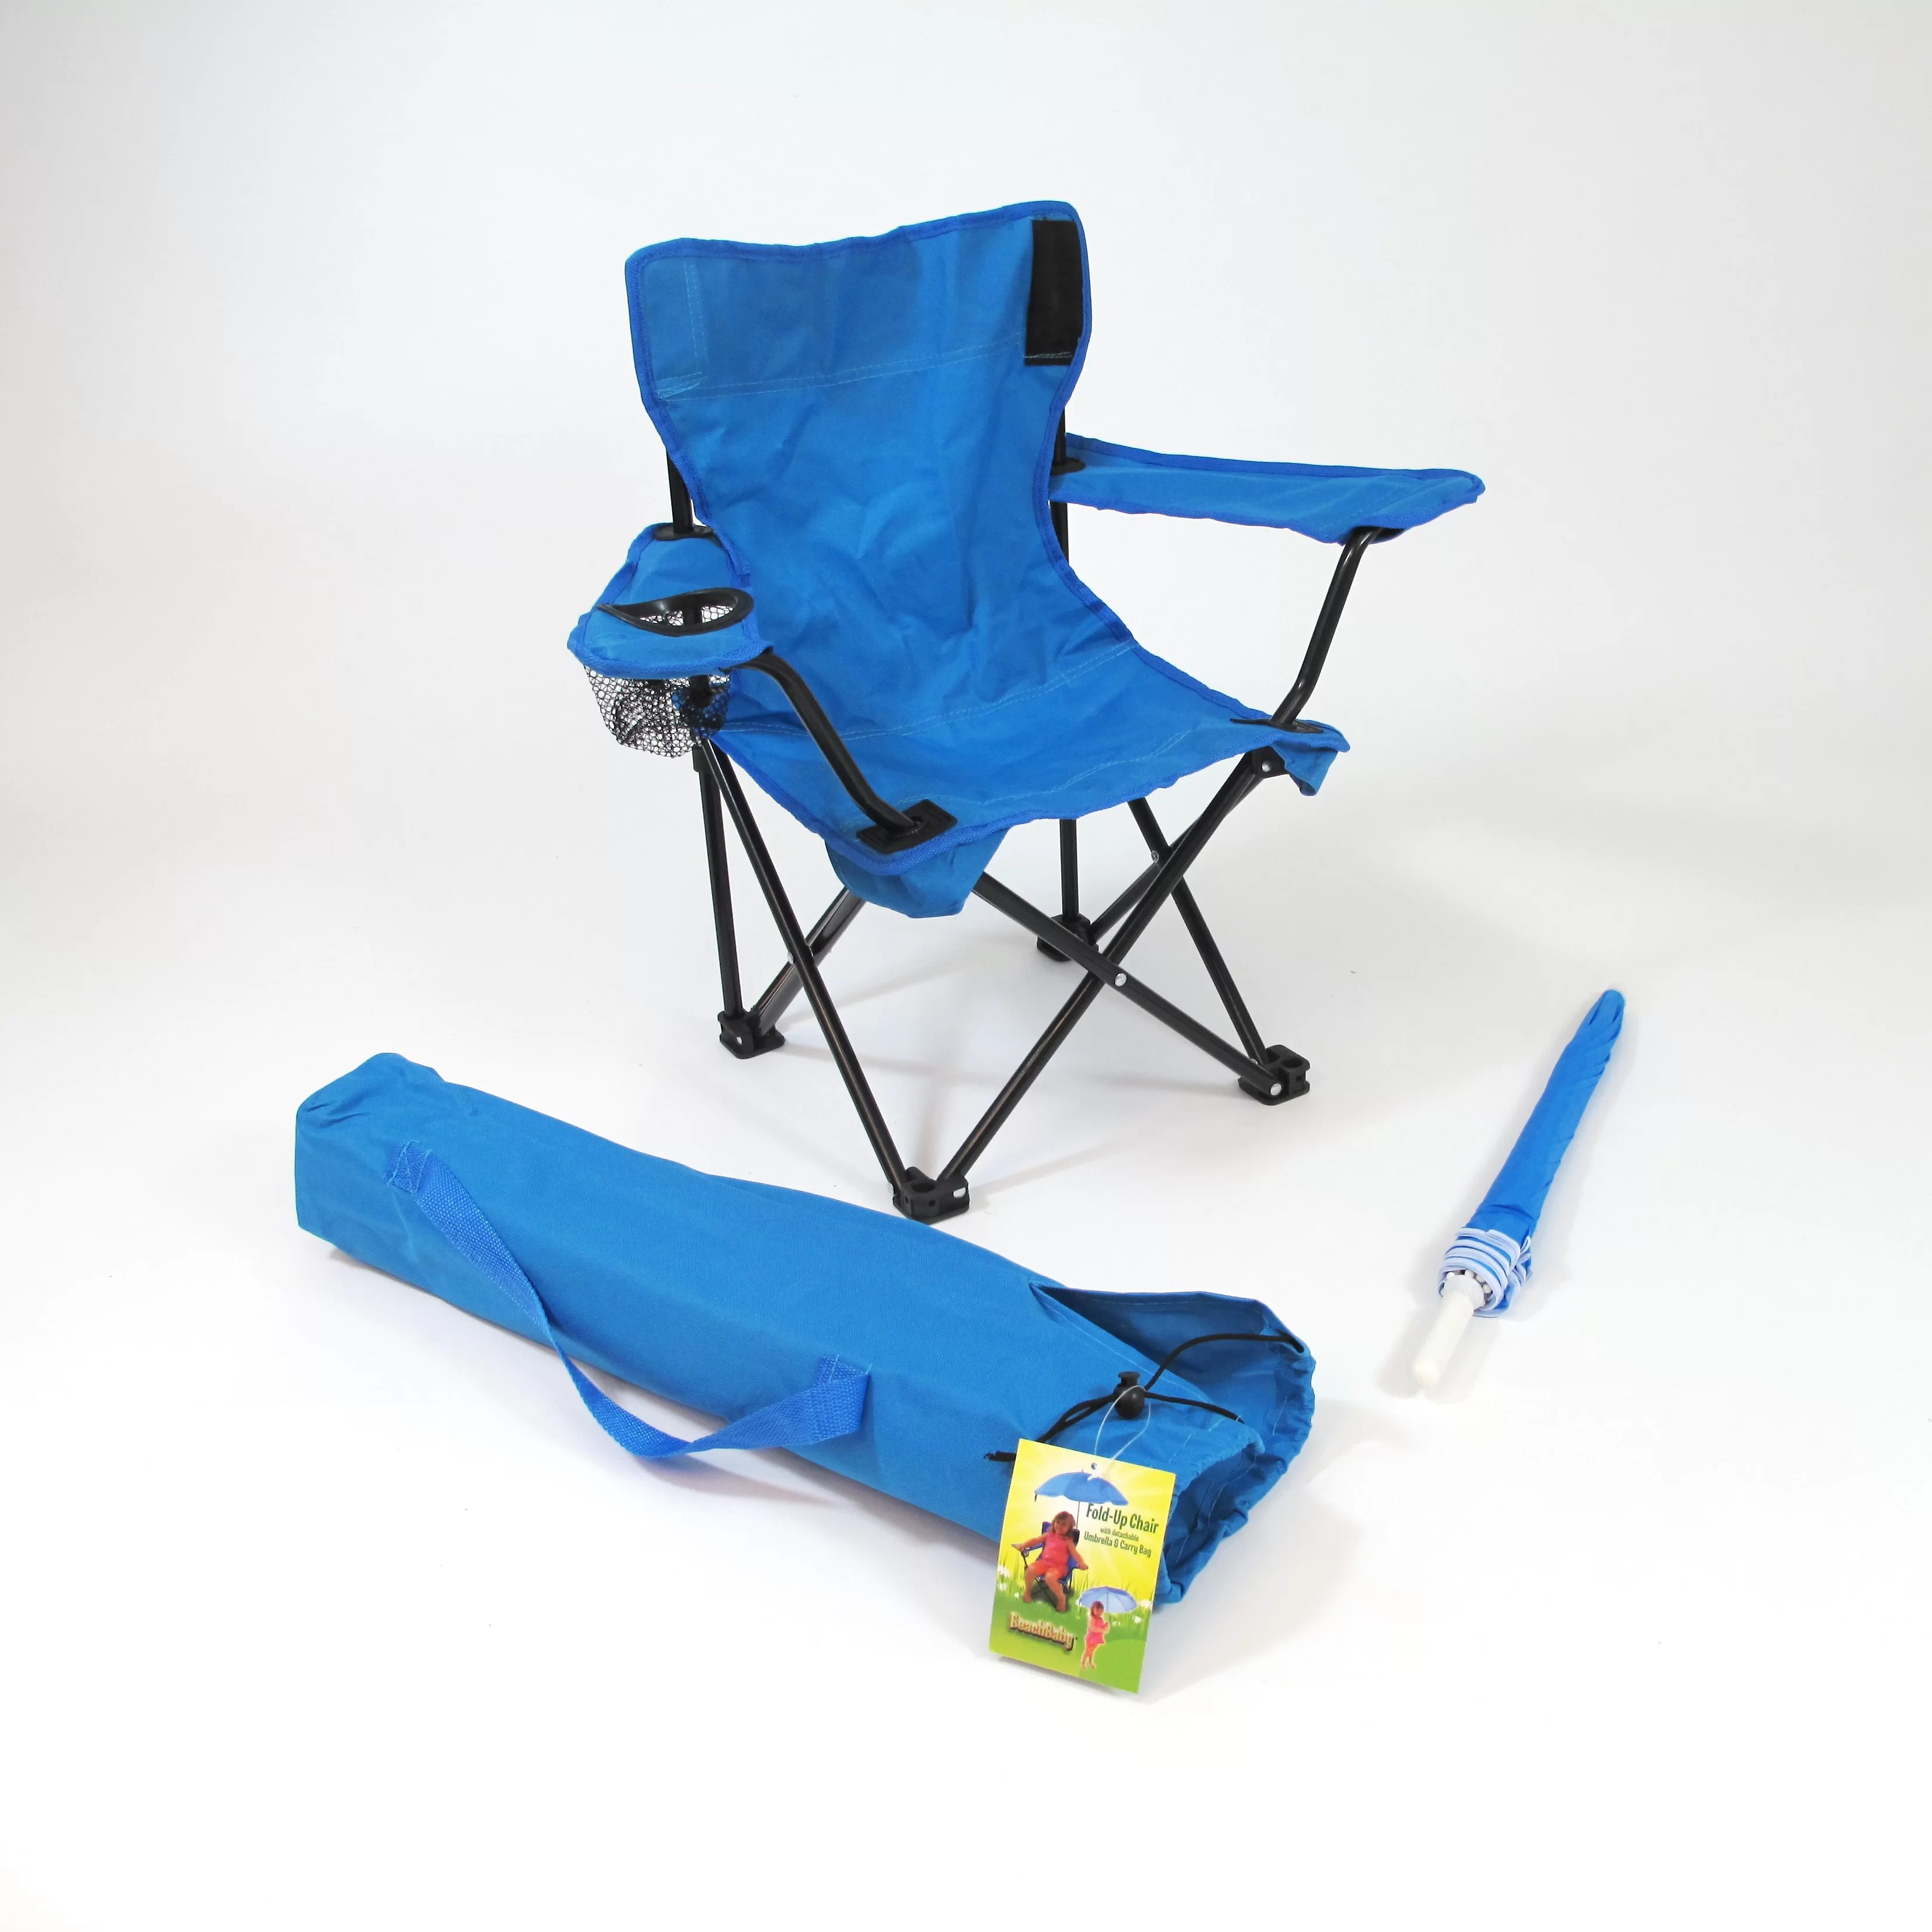 kid camping chair cover hire greenock redmon for kids with cup holder